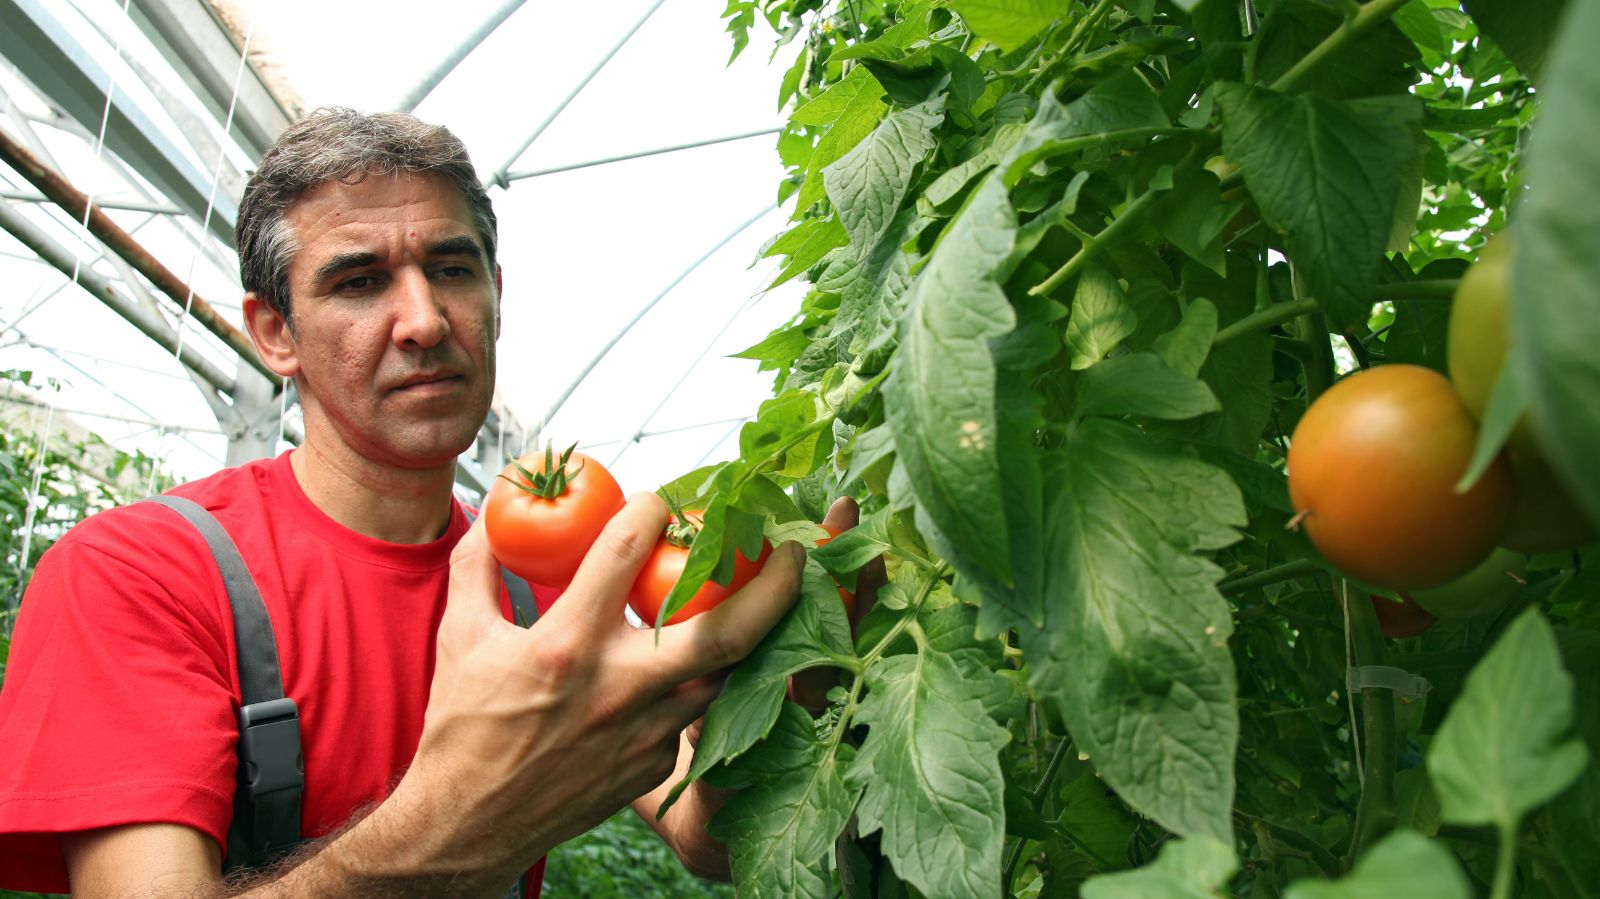 """Statewide Agriculture Community Launches """"Grow NY Farms"""" Initiative To Highlight Concerns Of Growers, Farmers And Agribusinesses"""